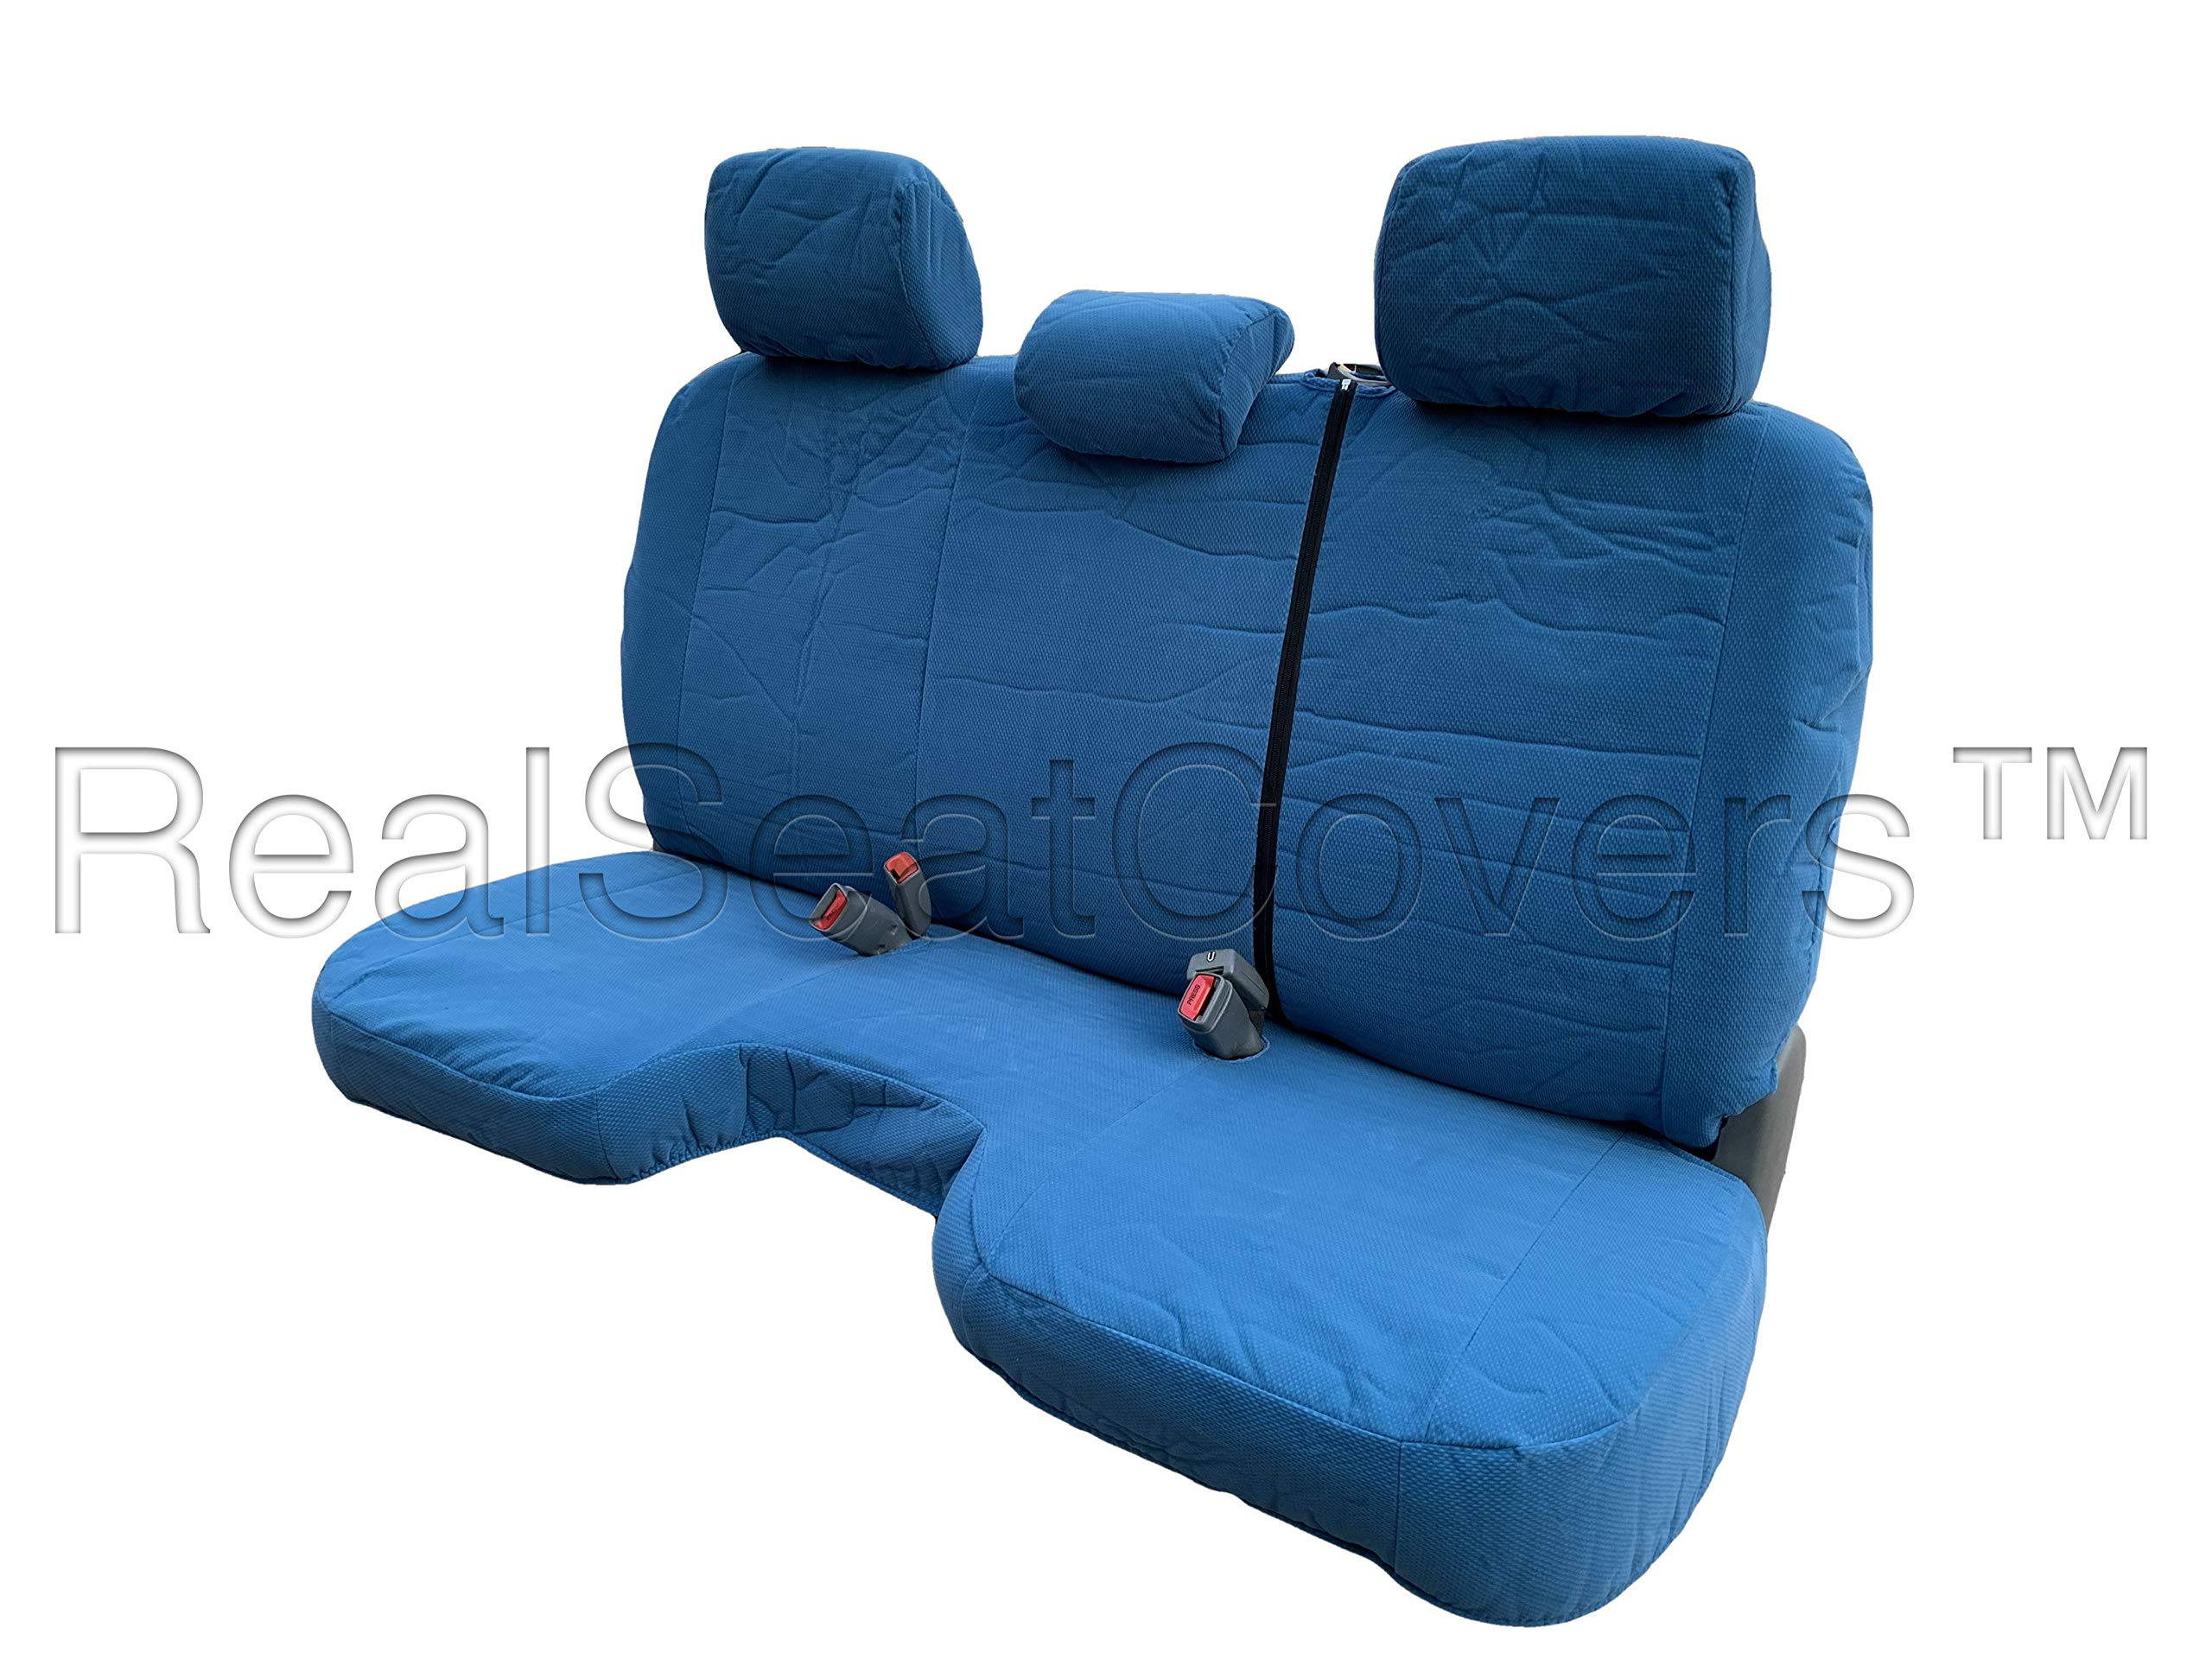 RealSeatCovers for Toyota Tacom Regular Cab Solid Bench with 3 Adjustable Headrest A30 Custom Made for Exact Fit Seat Cover for Toyota Tacoma 2005-2008 (Blue)